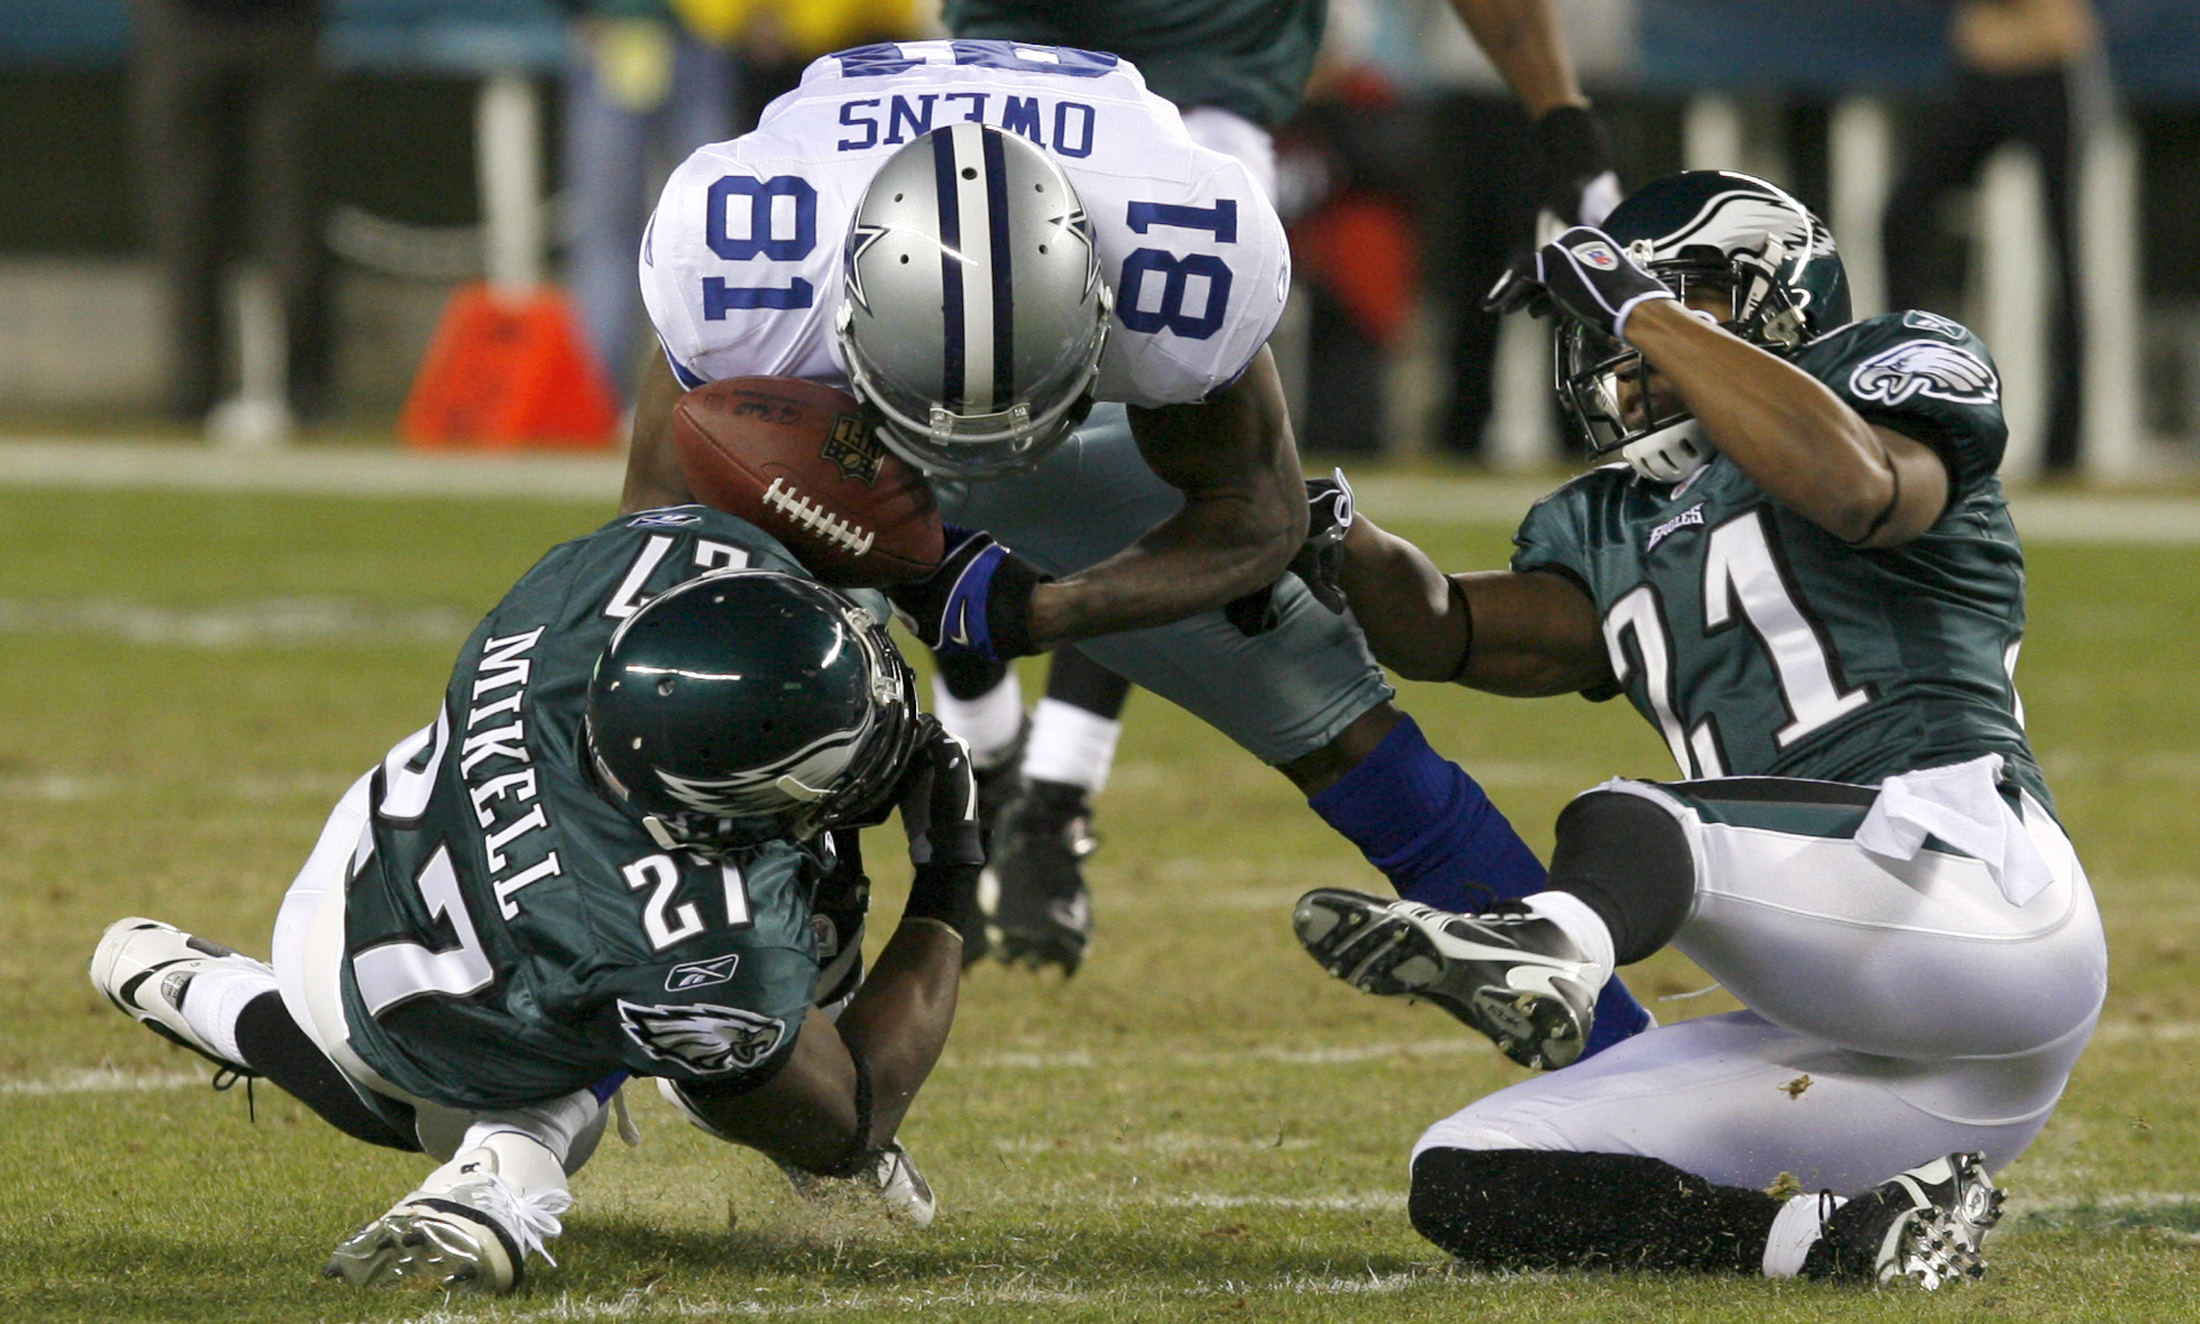 Philadelphia Eagles cornerback Joselio Hanson, 21, and safety Quintin Mikell, 27, break up a pass intended for Dallas Cowboys receiver Terrell Owens, ...